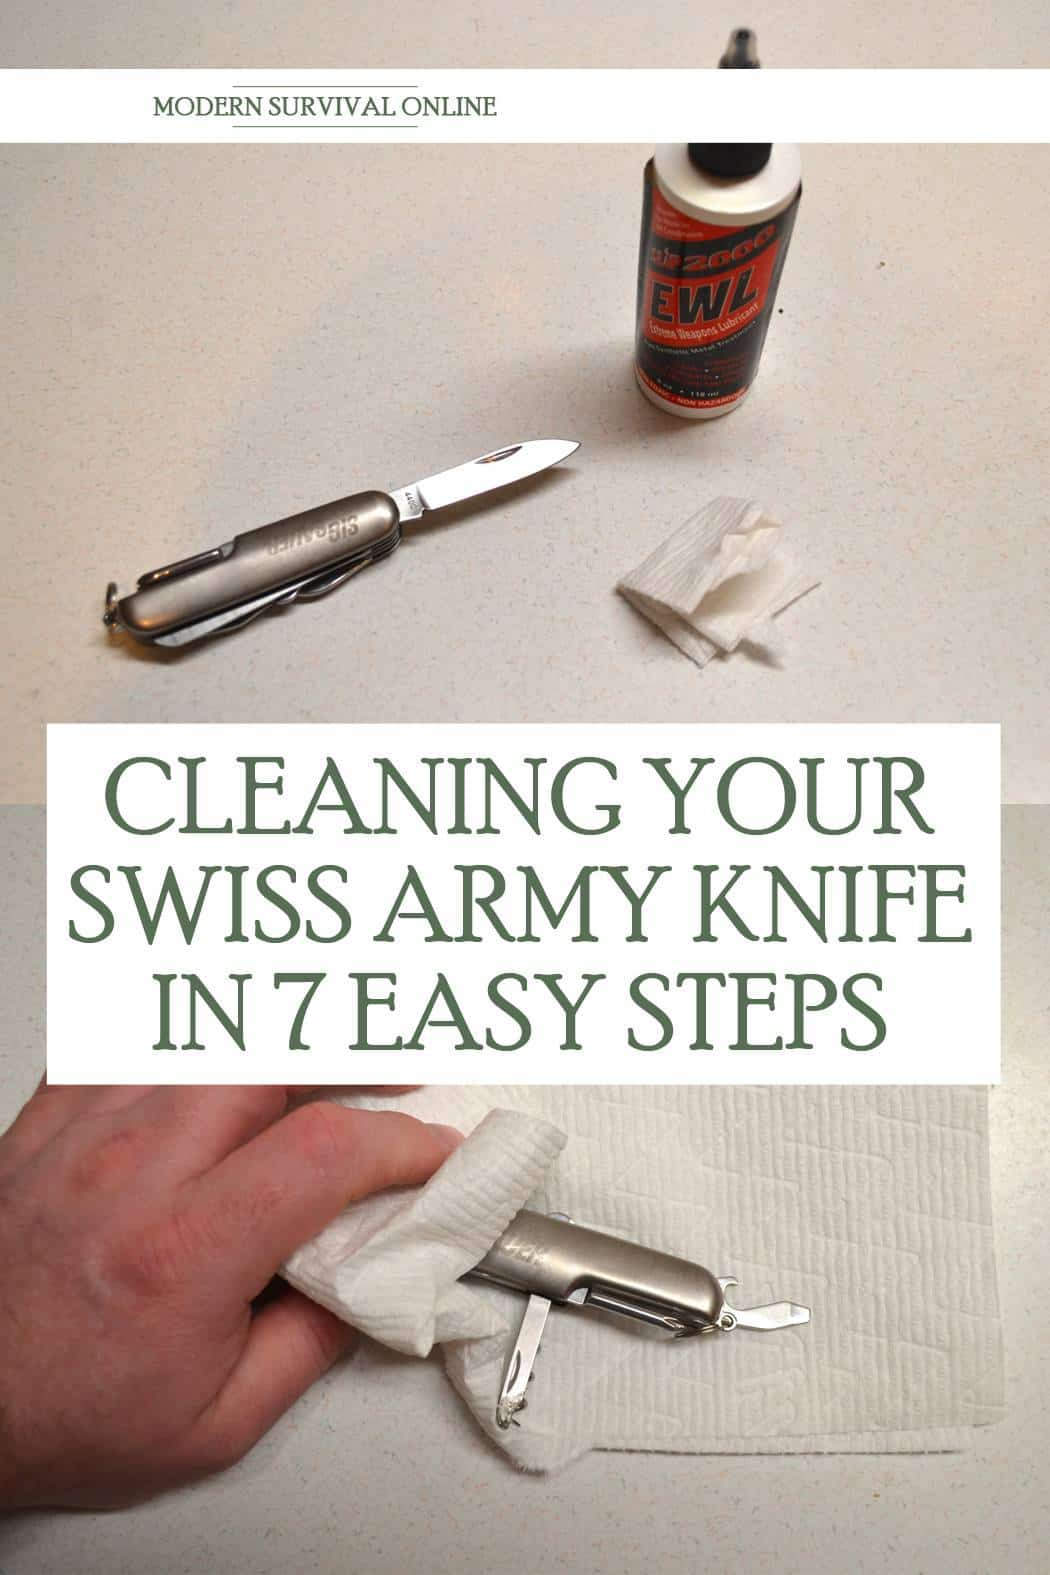 cleaning Swiss army knife pinterest